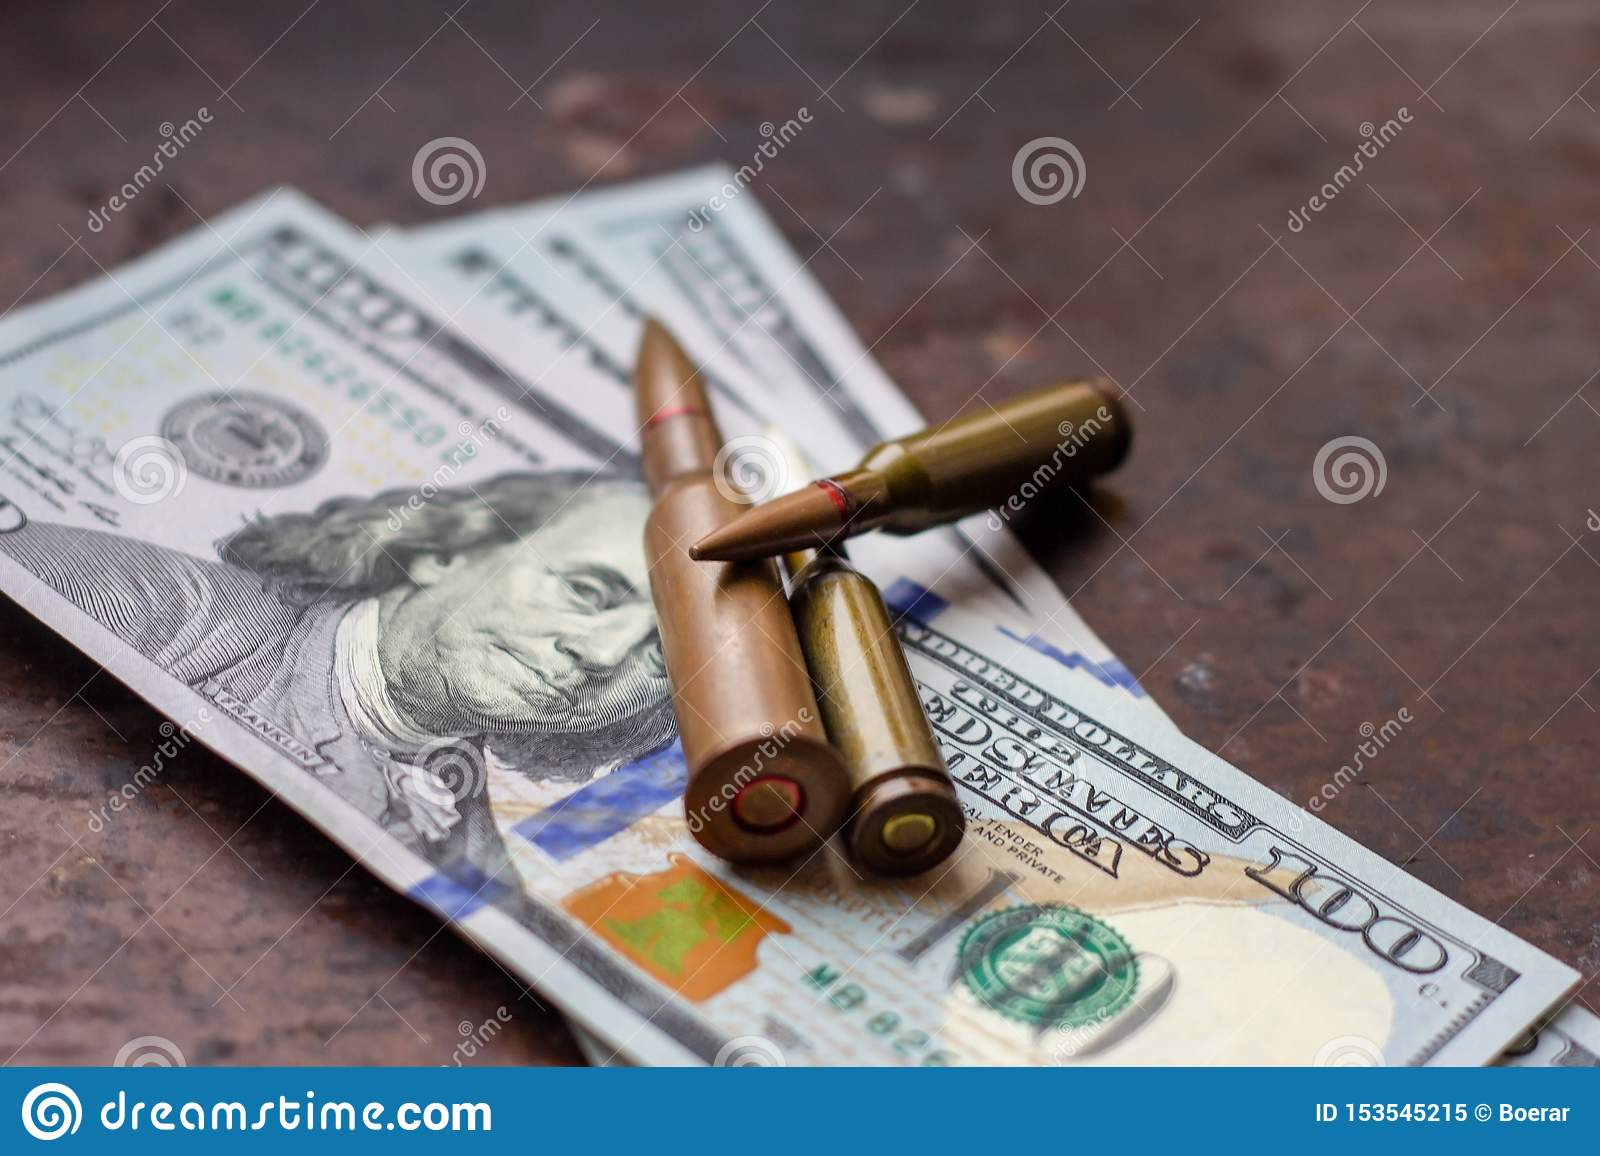 Diverse weapon bullets on American dollars background. Military industry, war, global arms trade and crime concept.